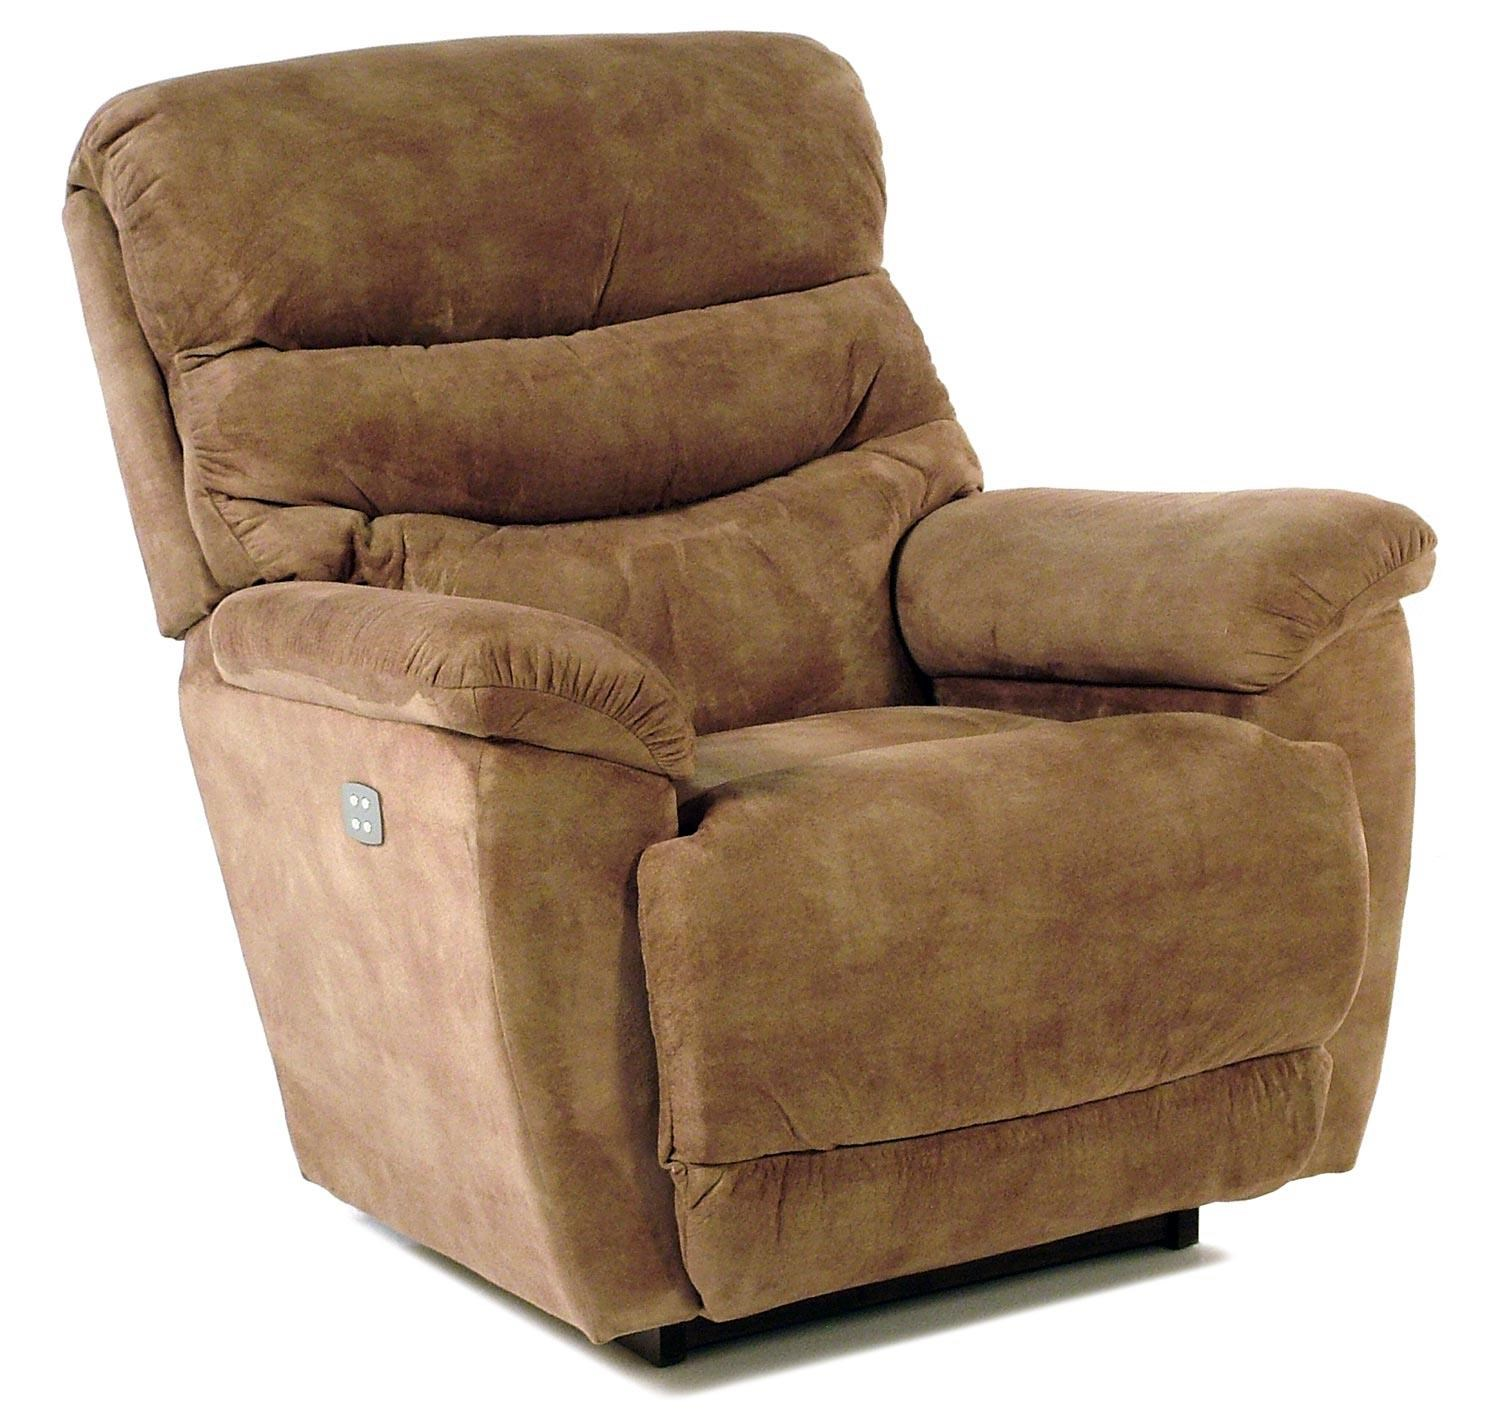 La-Z-Boy Recliners Joshua Power-Recline-XR RECLINA-ROCKER®  sc 1 st  Rotmans & La-Z-Boy Recliners Joshua Power-Recline-XR RECLINA-ROCKER ... islam-shia.org